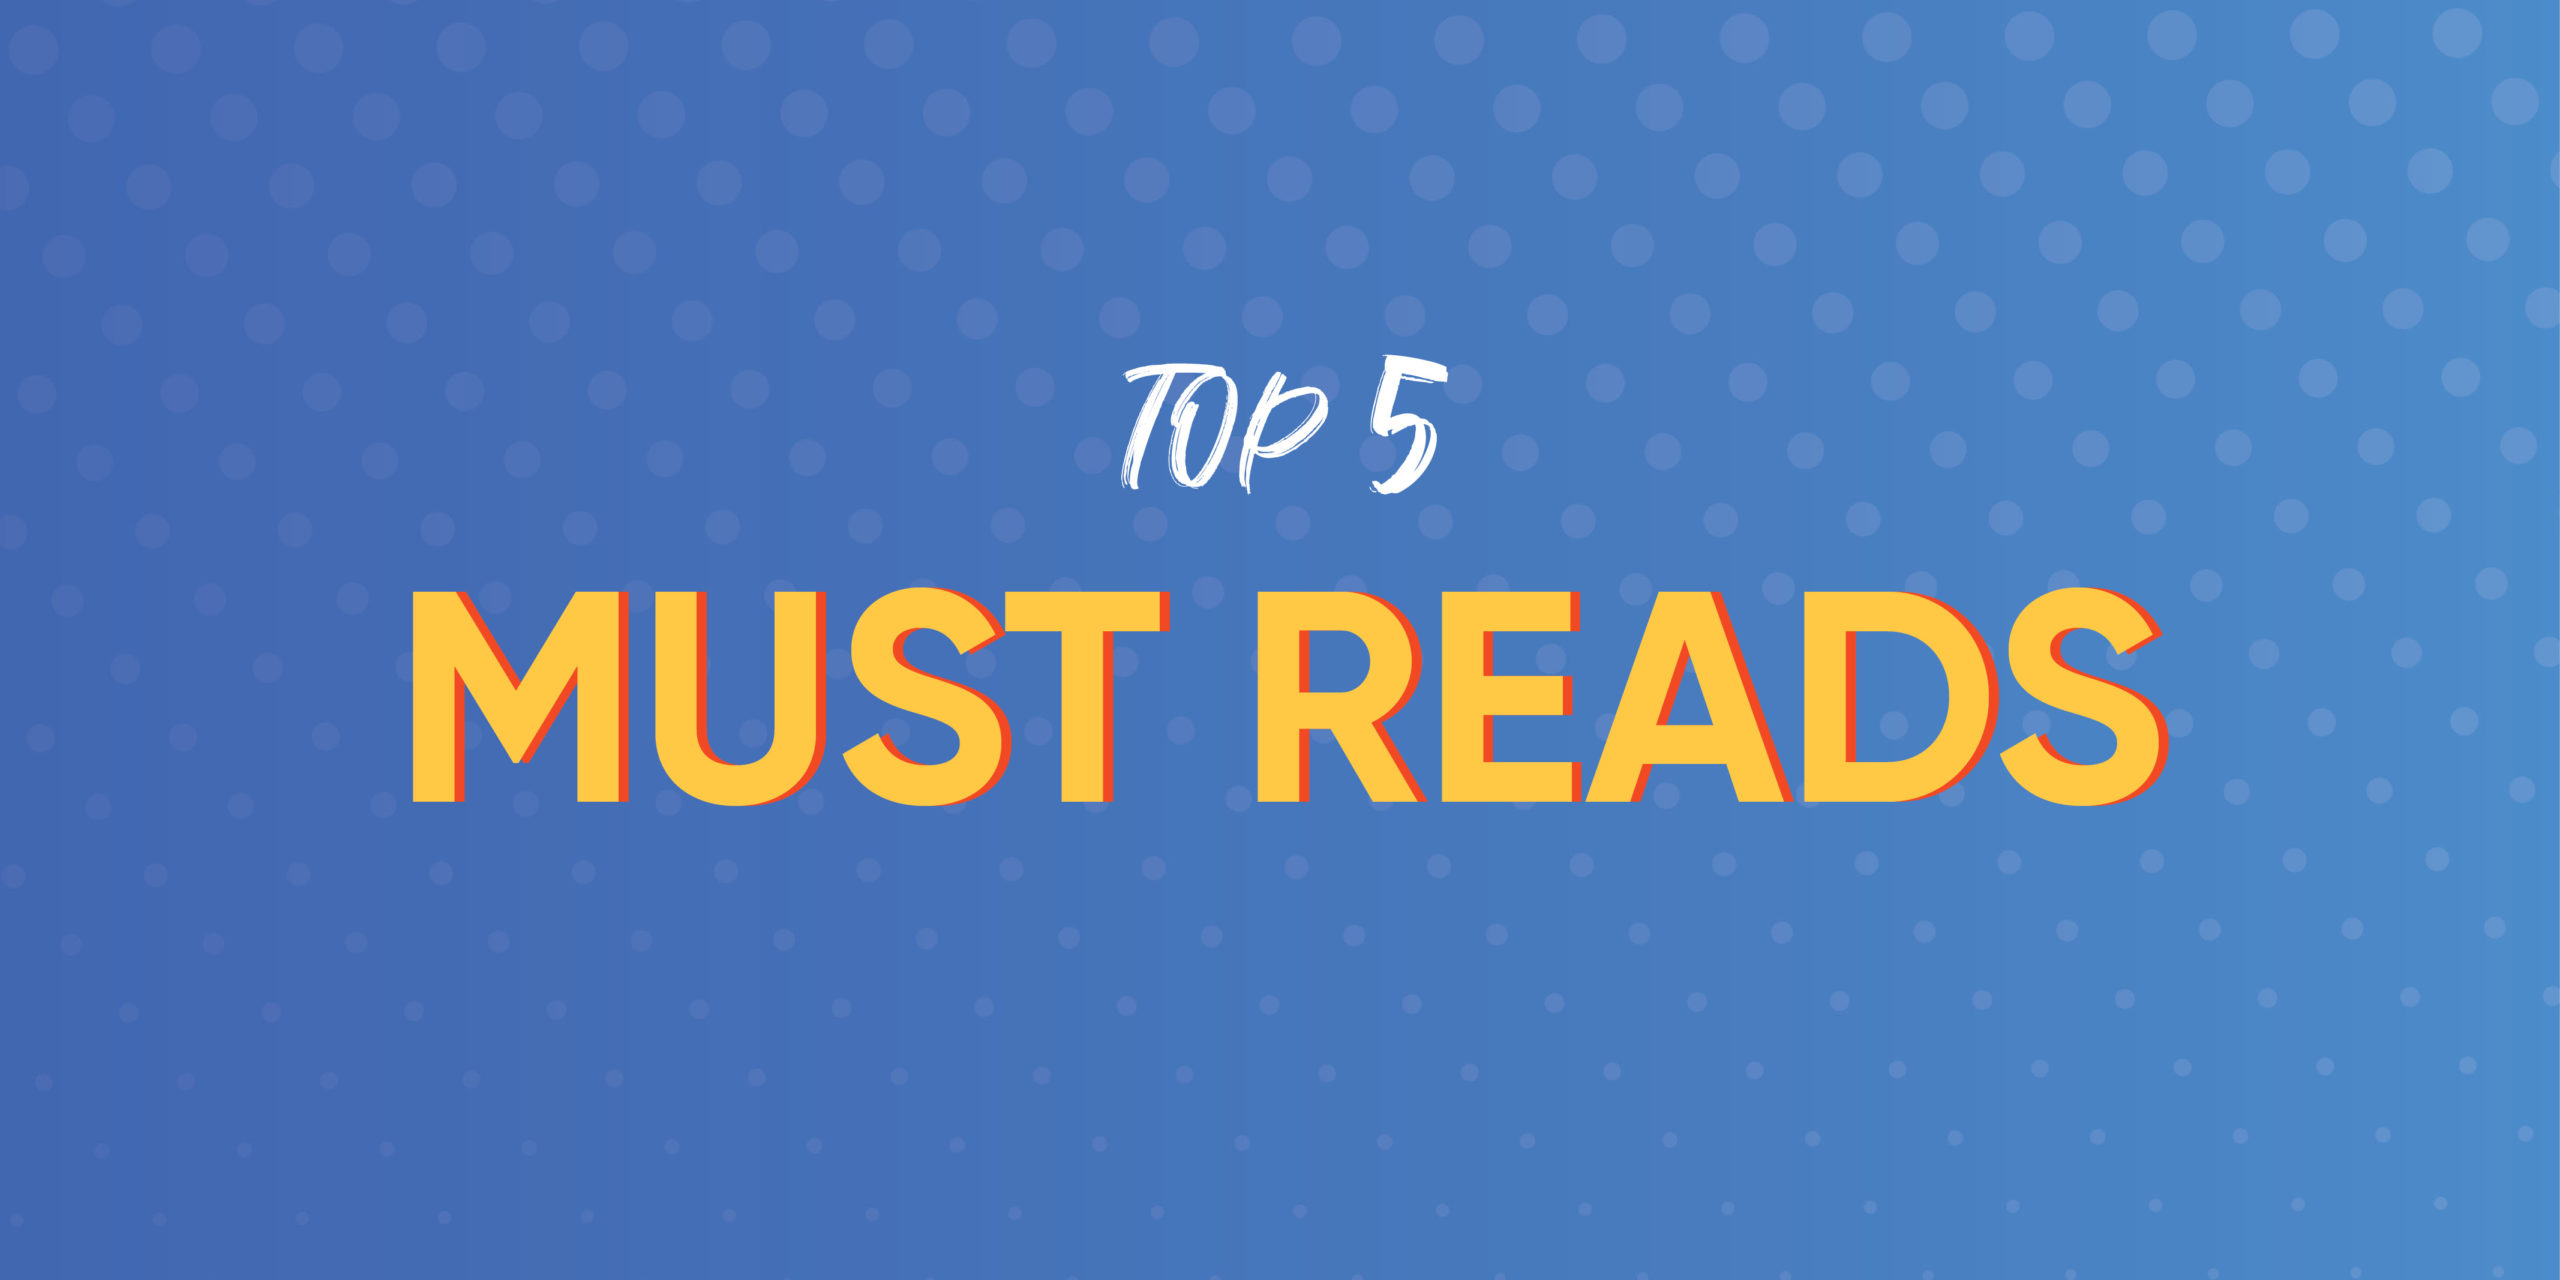 Top 5 Must Reads